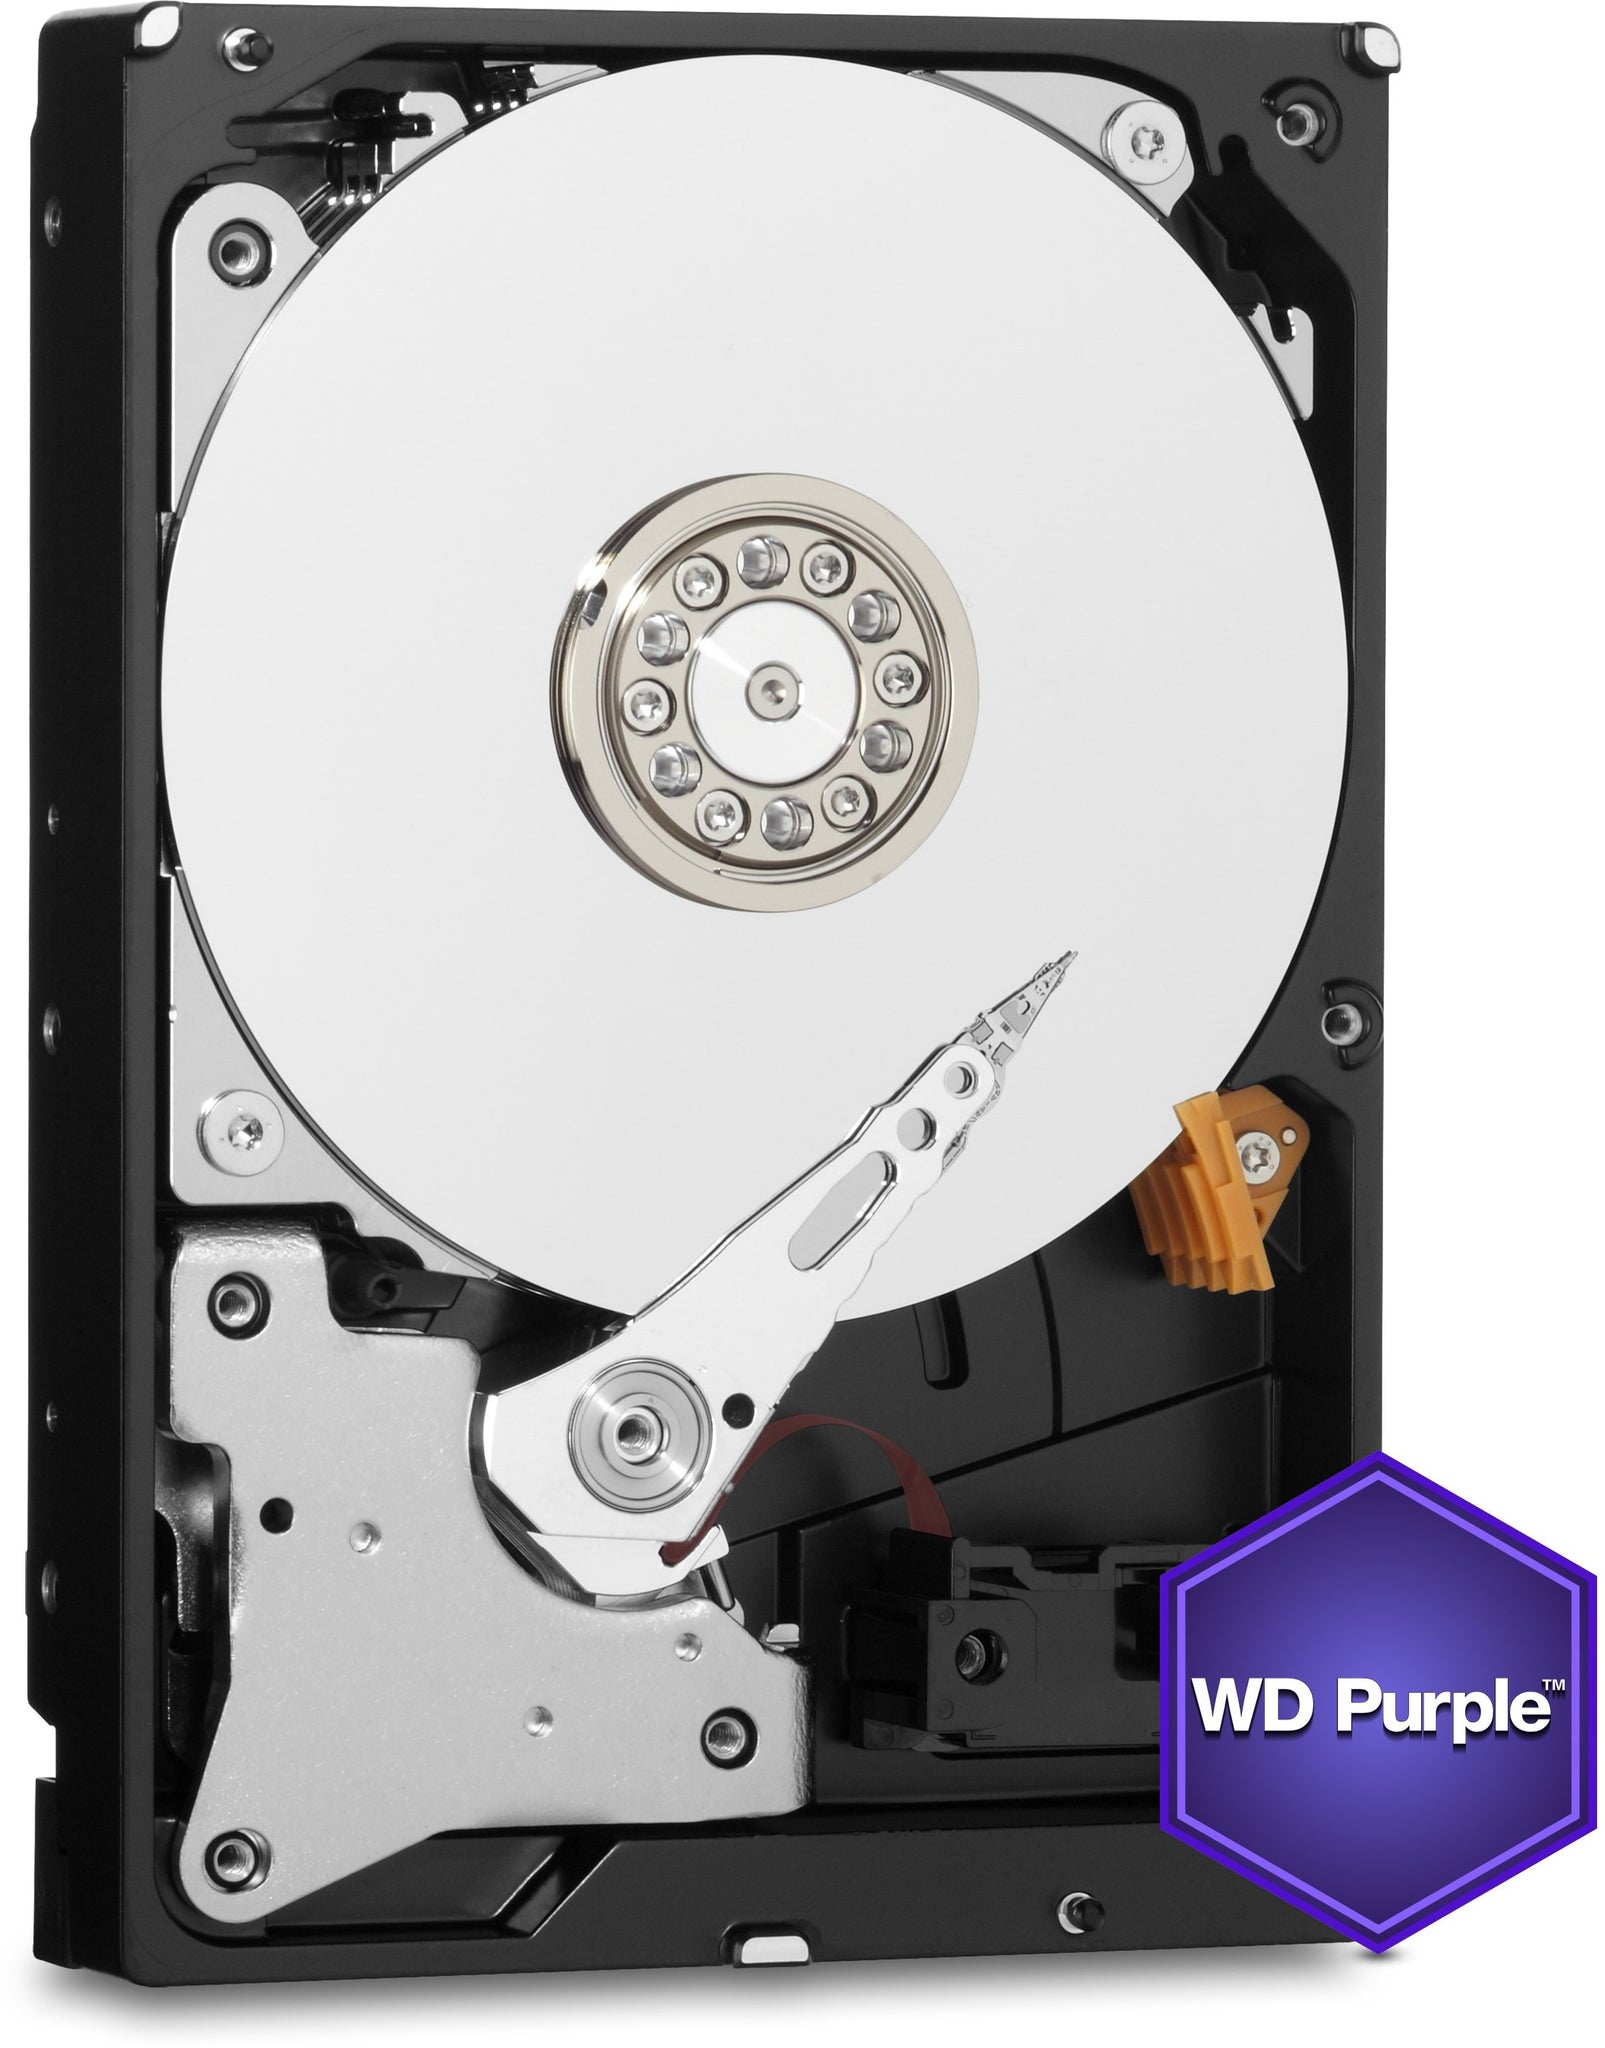 "3.5"" Wd Purple,6 Tb,Intellipower,64 Mb,Sata Iii,(6 Gbps),3 Yrs"